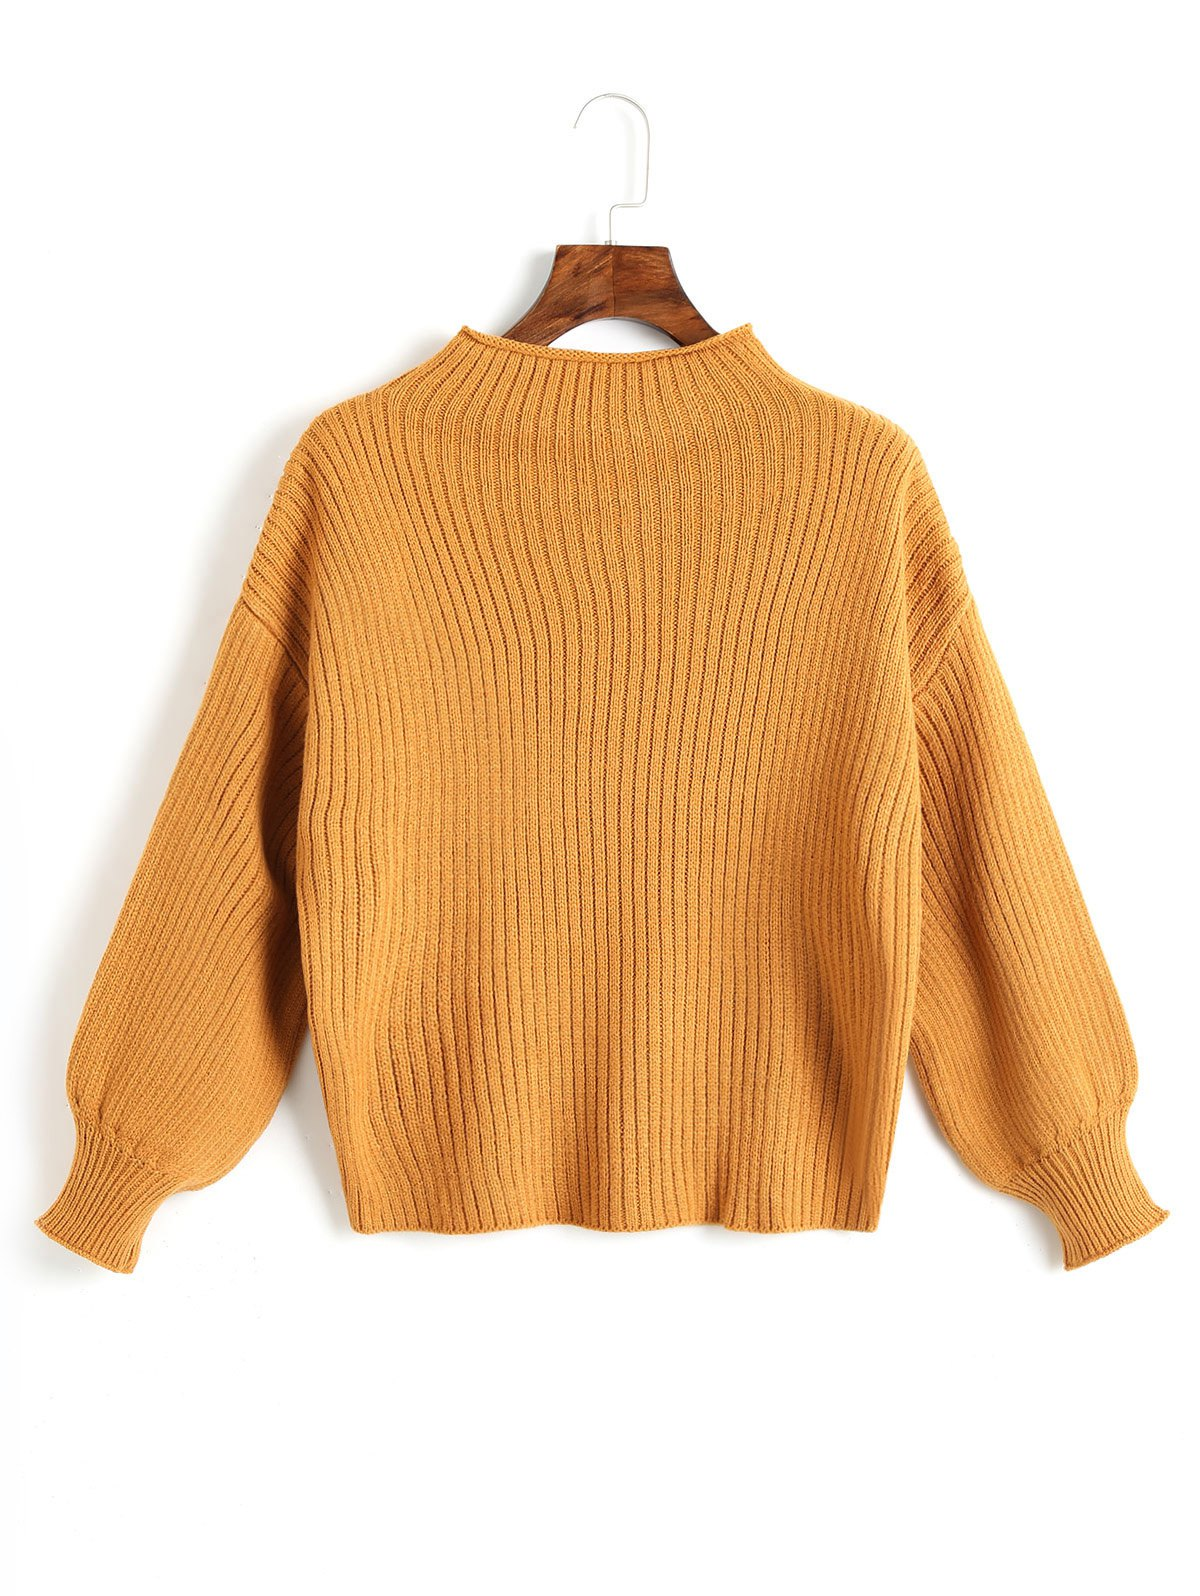 Lantern Sleeve Plain Pullover Sweater - GINGER ONE SIZE